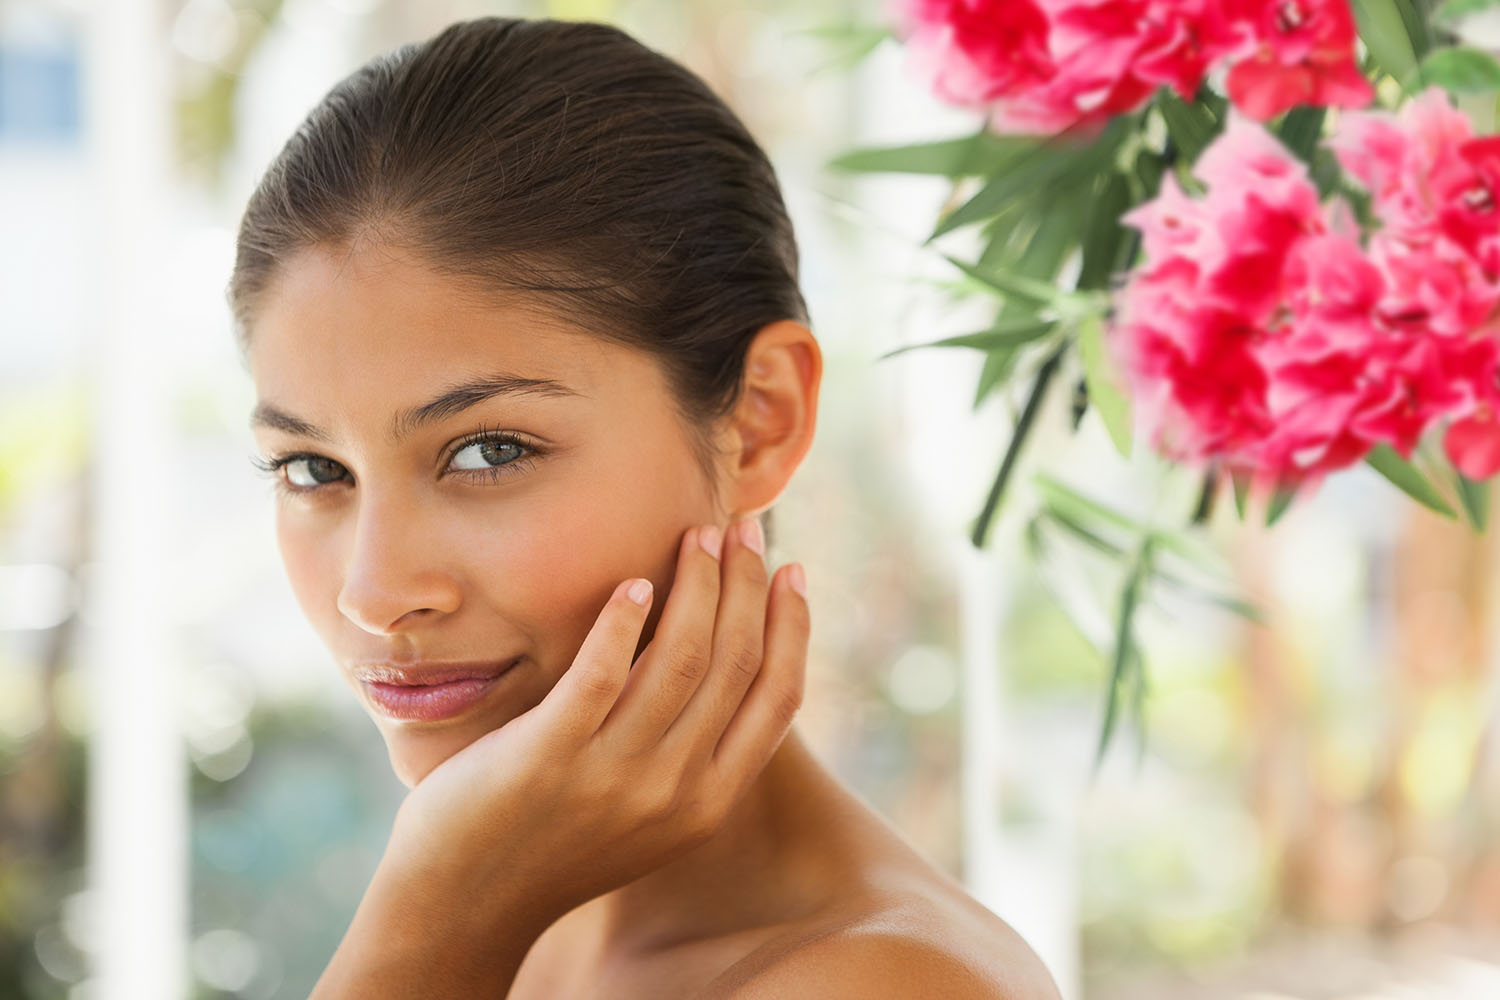 Our services - We offer a variety of services. Whether it's permanently eliminating unwanted hair with laser hair removal, or addressing different types of skin issues with our customized skin care treatments. We've got your advanced beauty needs taken care of. Call us today or book an appointment online to start your journey to beautiful, healthy skin.